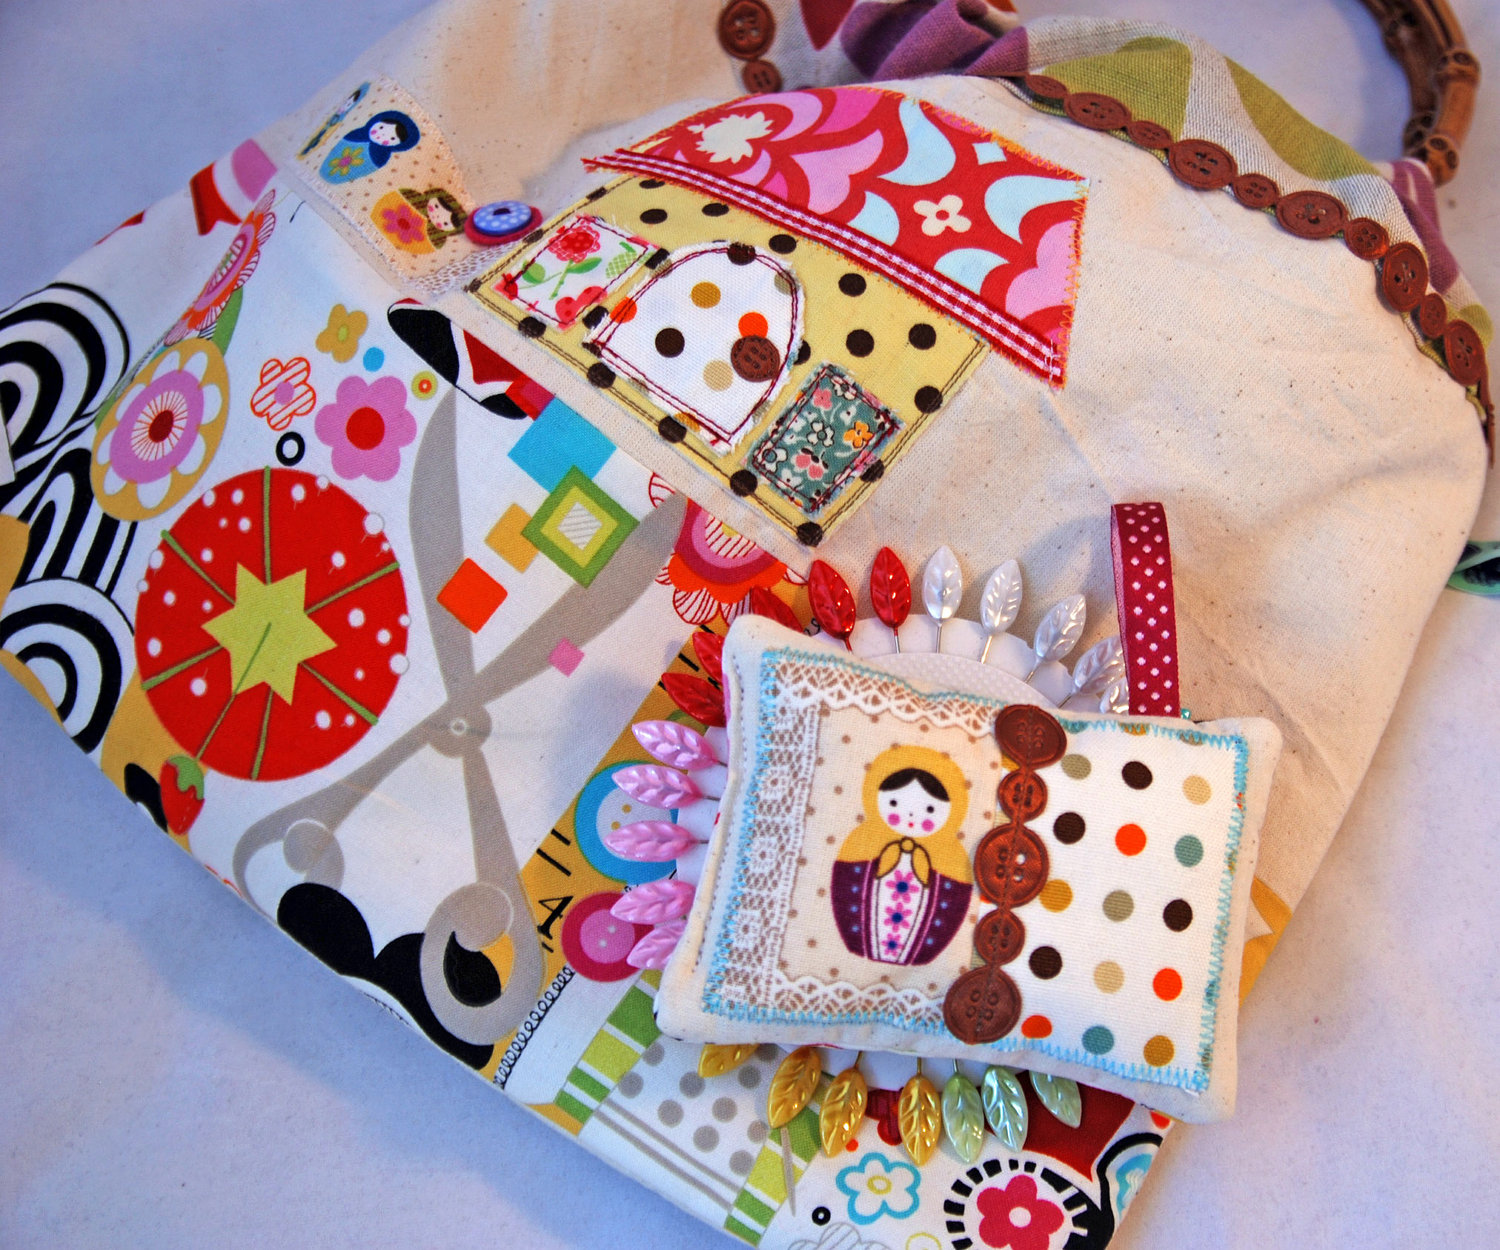 A Really Nice Made To Order Handmade Sewing Bag With Pincushion And Pins